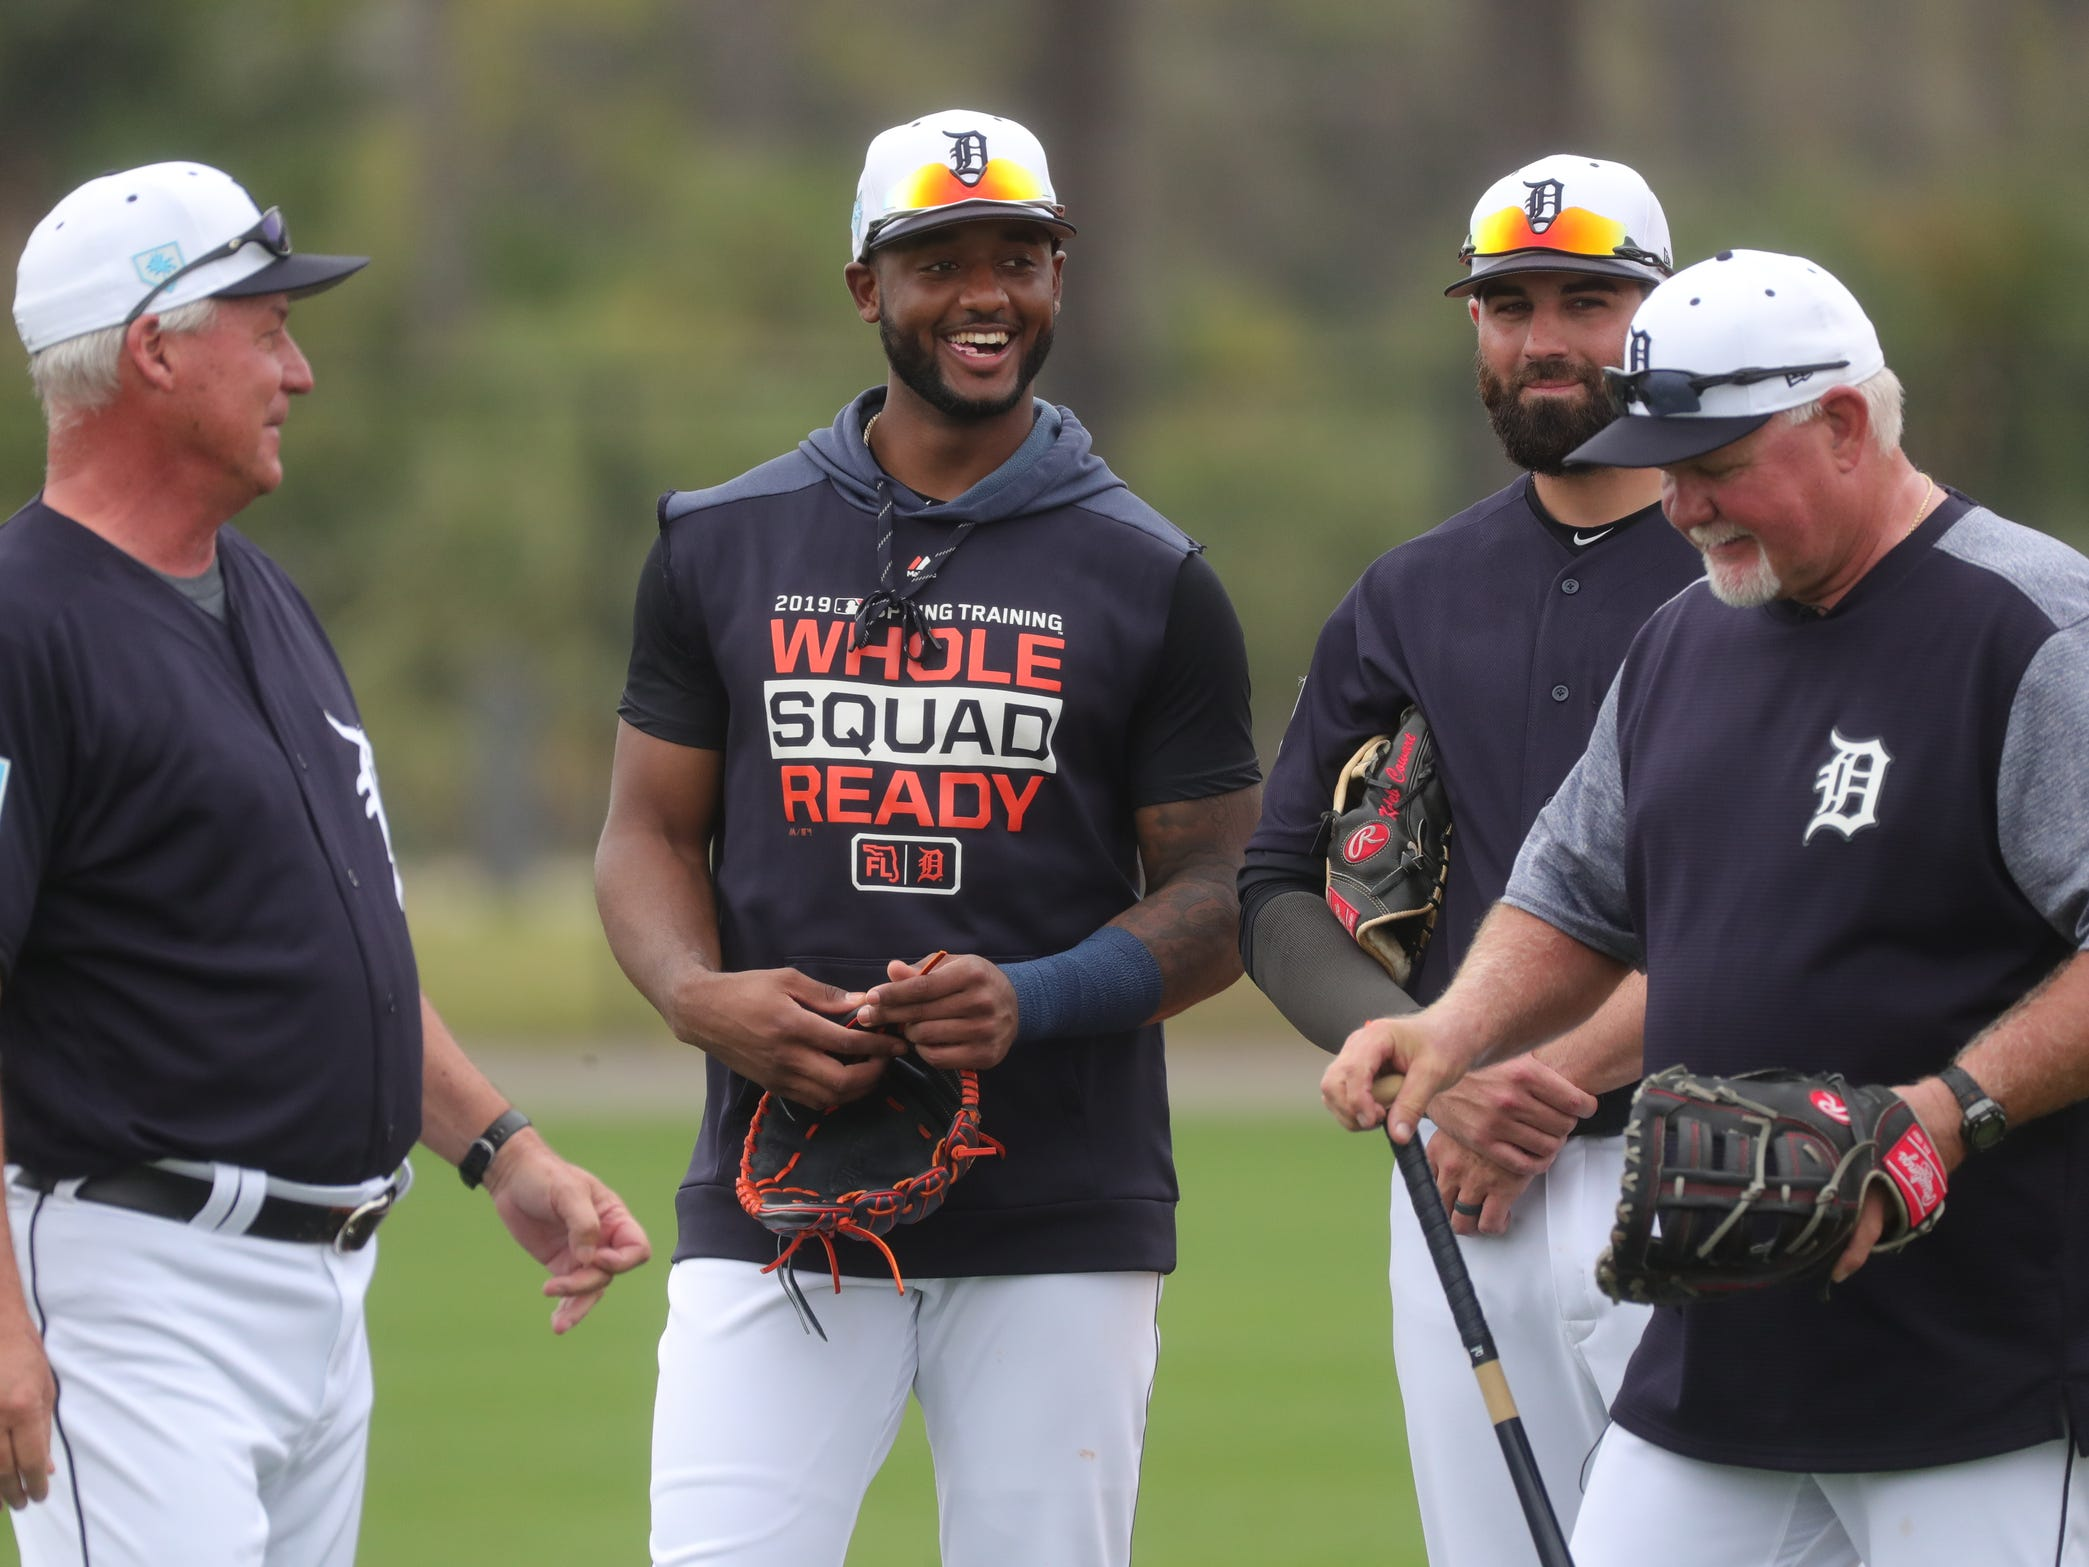 Tigers infielder Niko Goodrum (center) and manager Ron Gardenhire, right. talk during the first full team spring training practice on Monday, Feb. 18, 2019, at Joker Marchant Stadium in Lakeland, Florida.